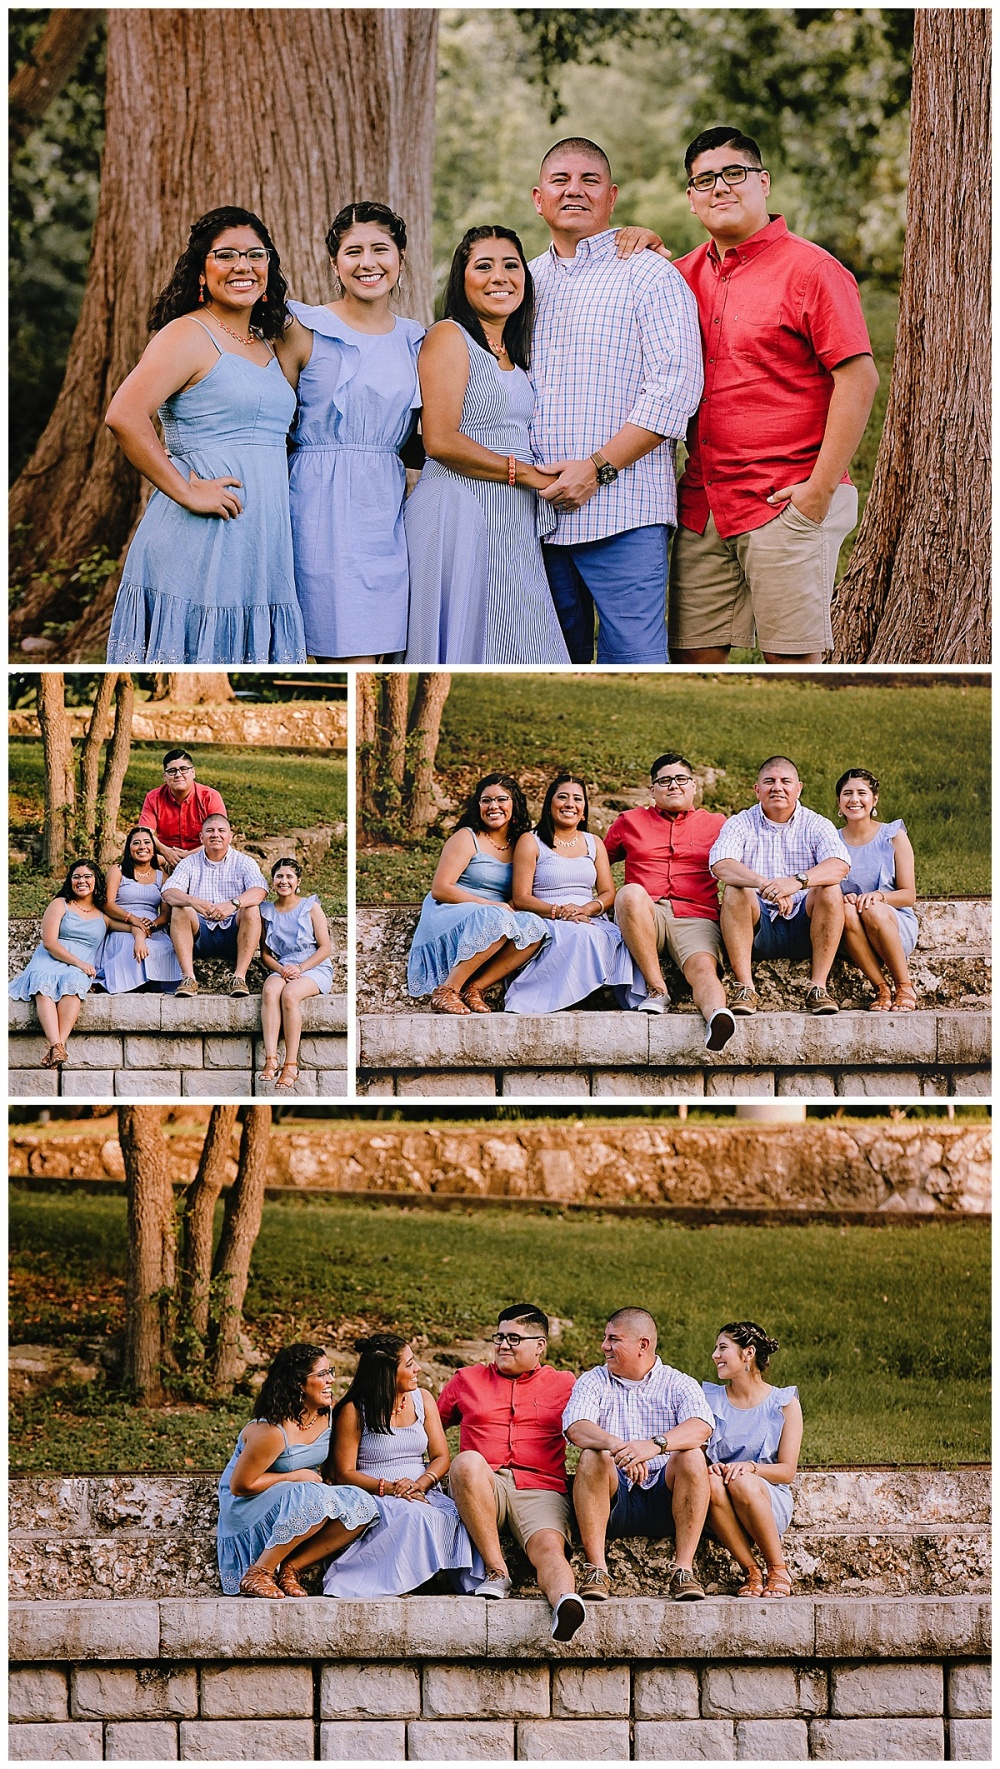 Carly-Barton-Photography-Family-Session-Landa-Park-New-Braunfels-Texas-Benavides_0006.jpg